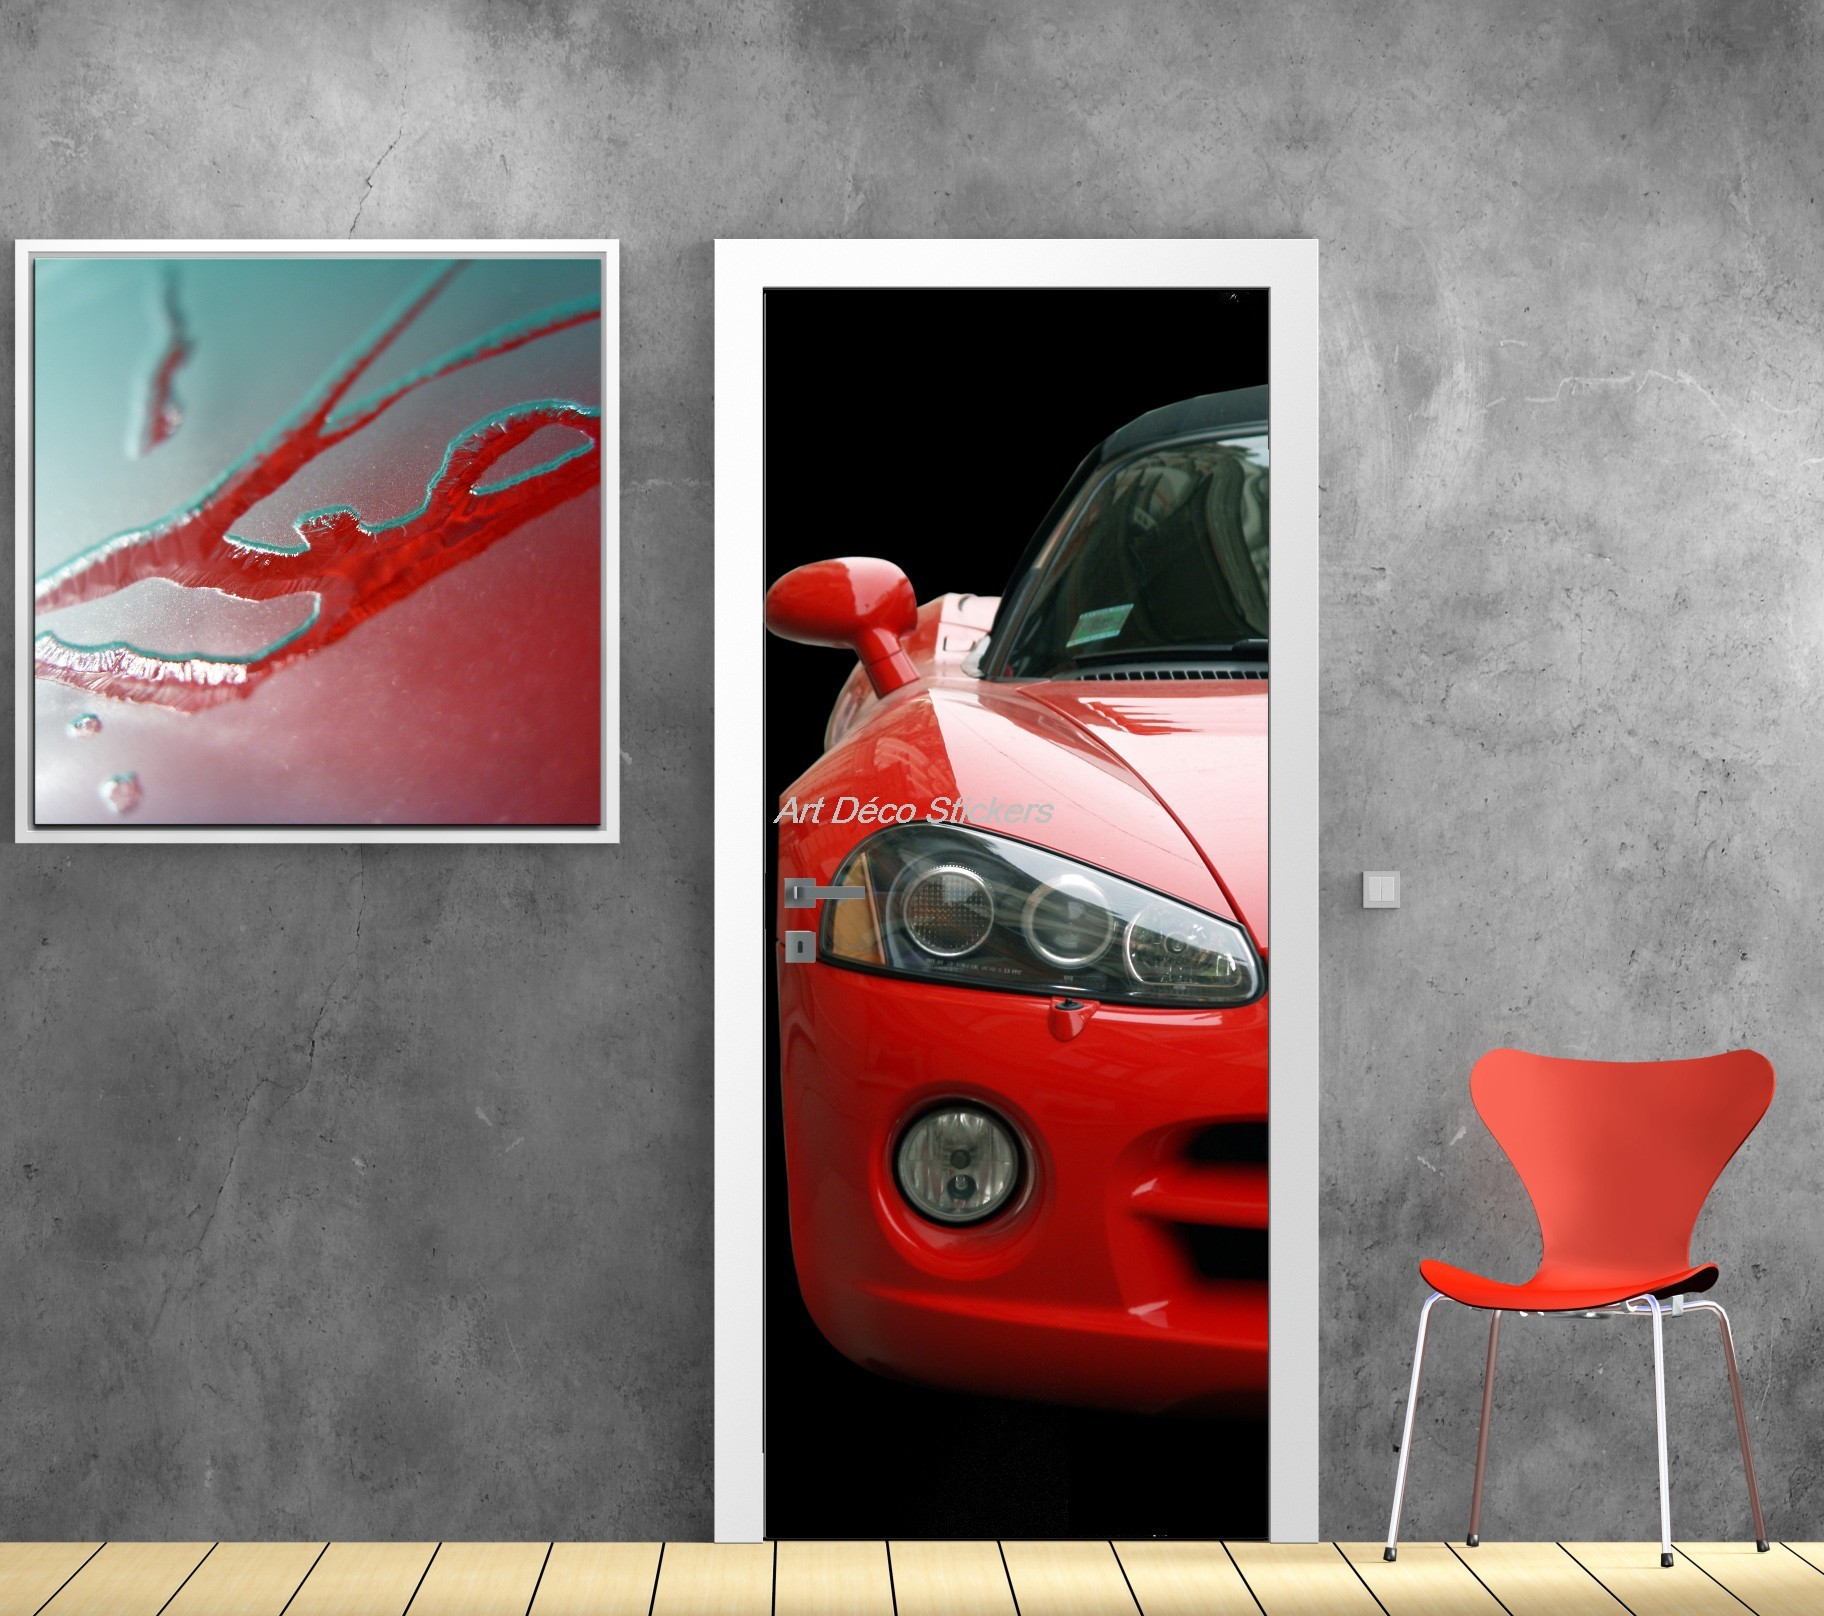 autocollant ferrari pour voiture id e d 39 image de voiture. Black Bedroom Furniture Sets. Home Design Ideas